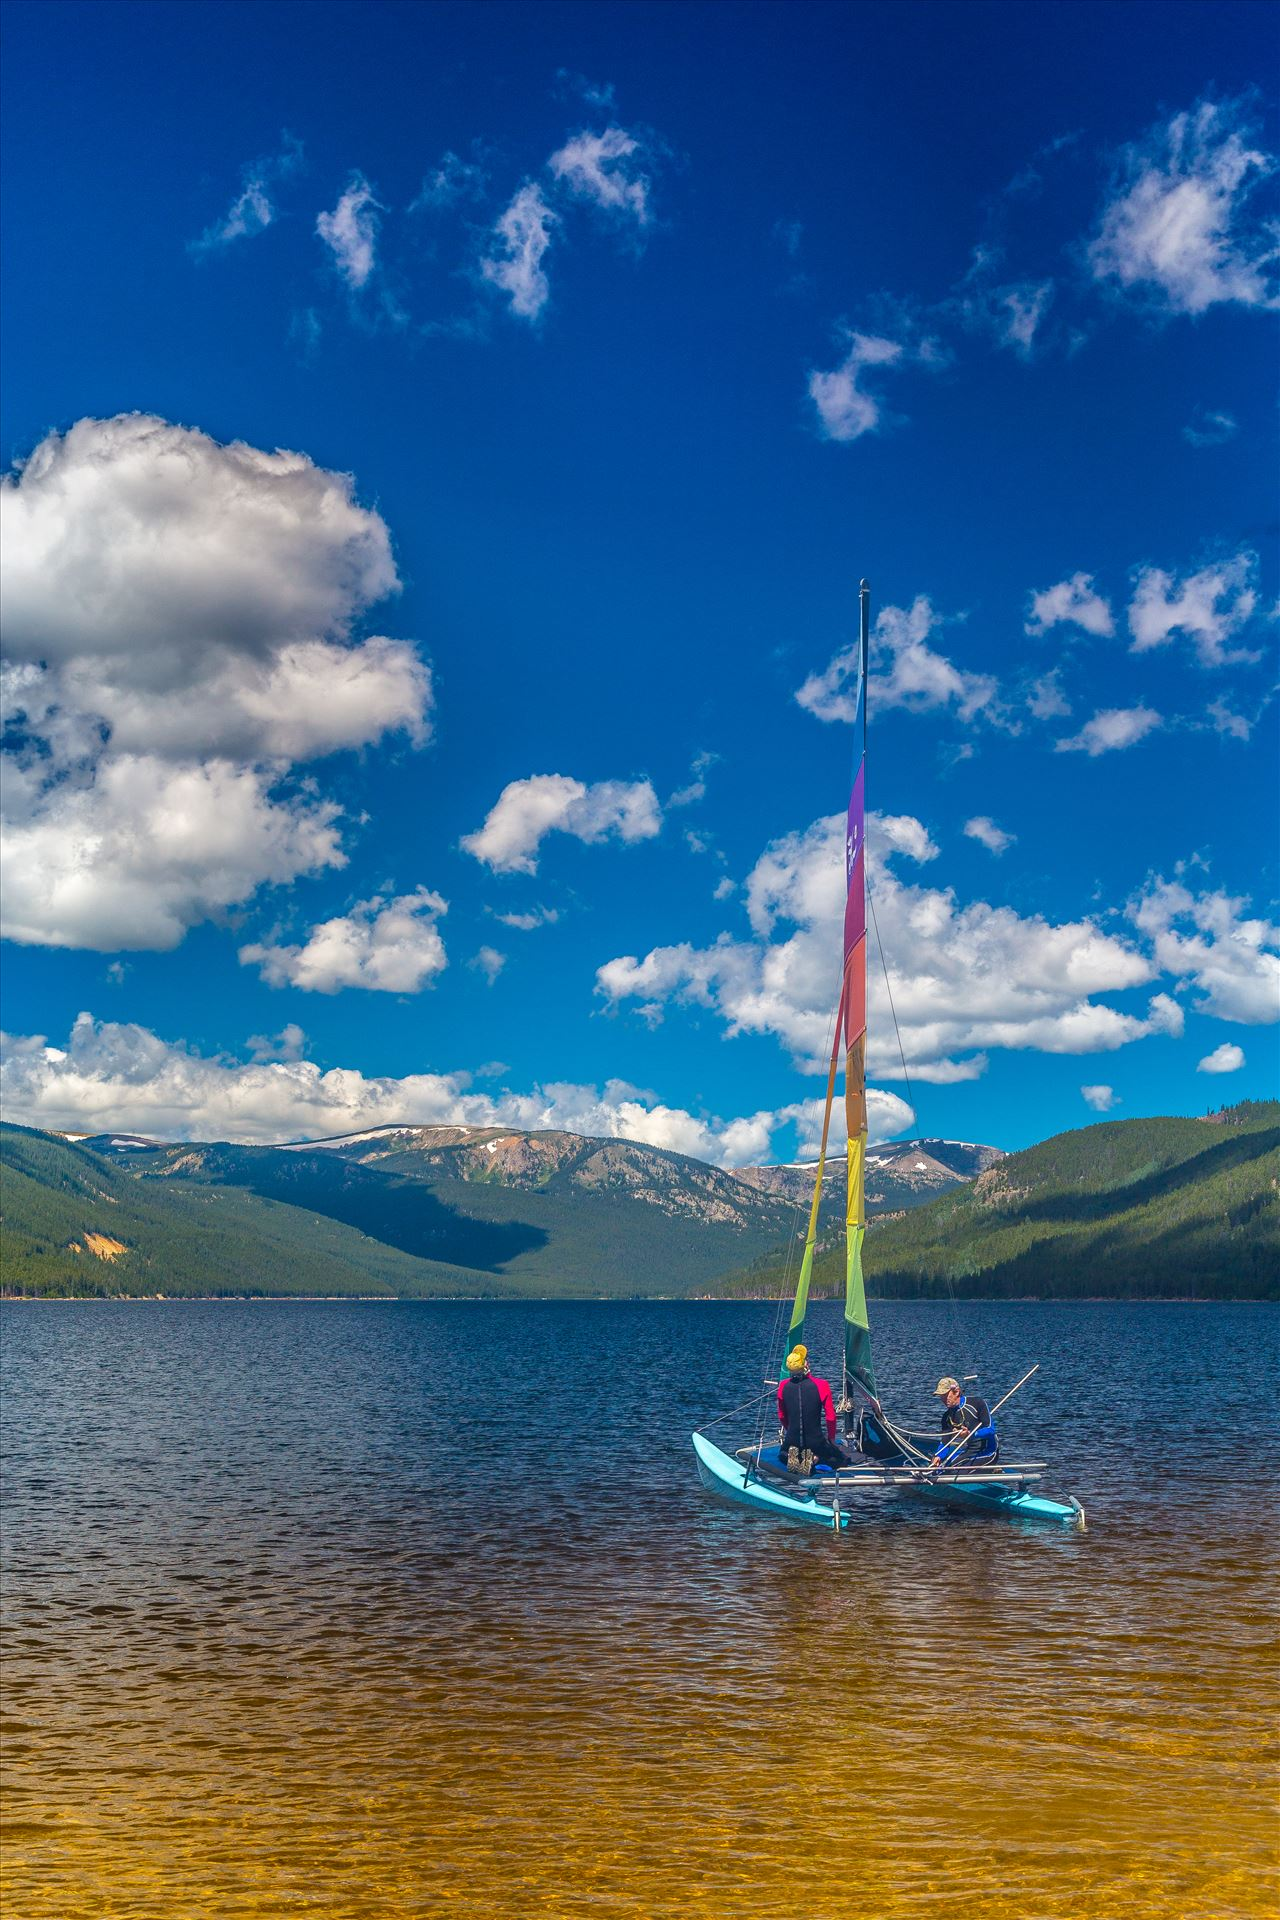 Sailing at Turquoise Lake - Sailing at Turqouise Lake, Leadville, Colorado. by Scott Smith Photos